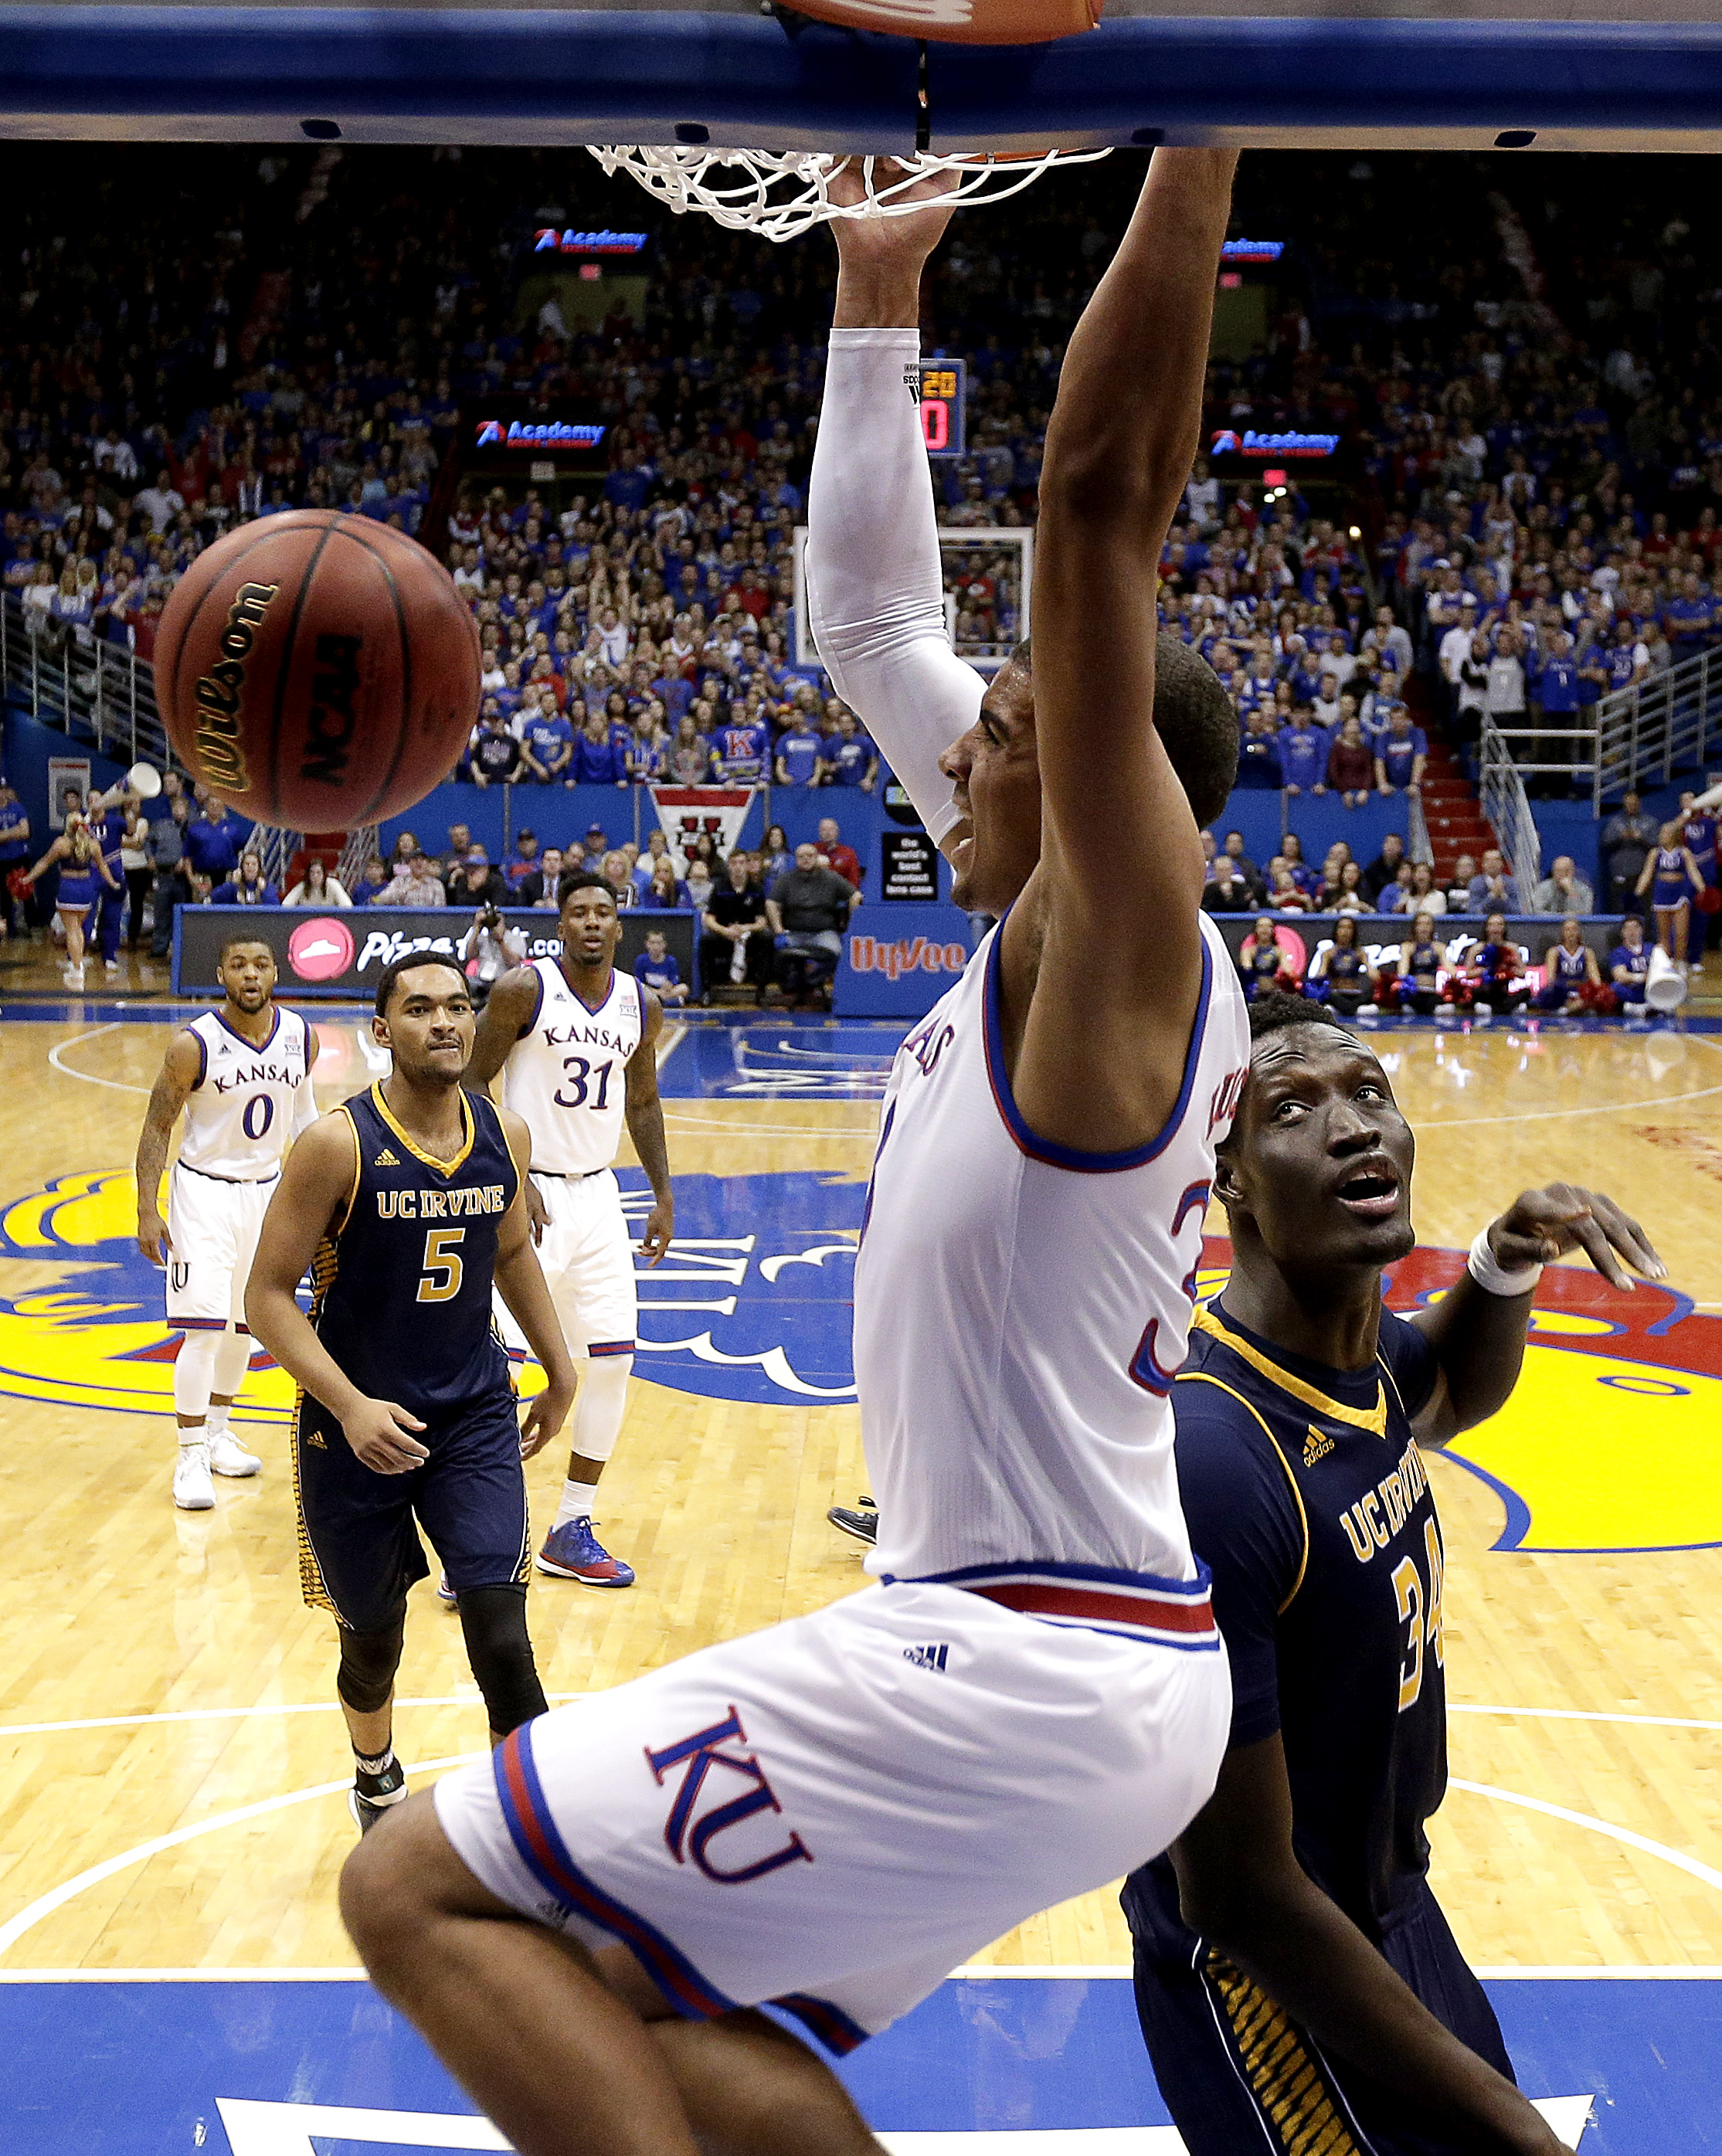 Kansas' Landen Lucas gets past UC Irvine's Mamadou Ndiaye (34) to dunk the ball during the first half of an NCAA college basketball game Tuesday, Dec. 29, 2015, in Lawrence, Kan. (AP Photo/Charlie Riedel)